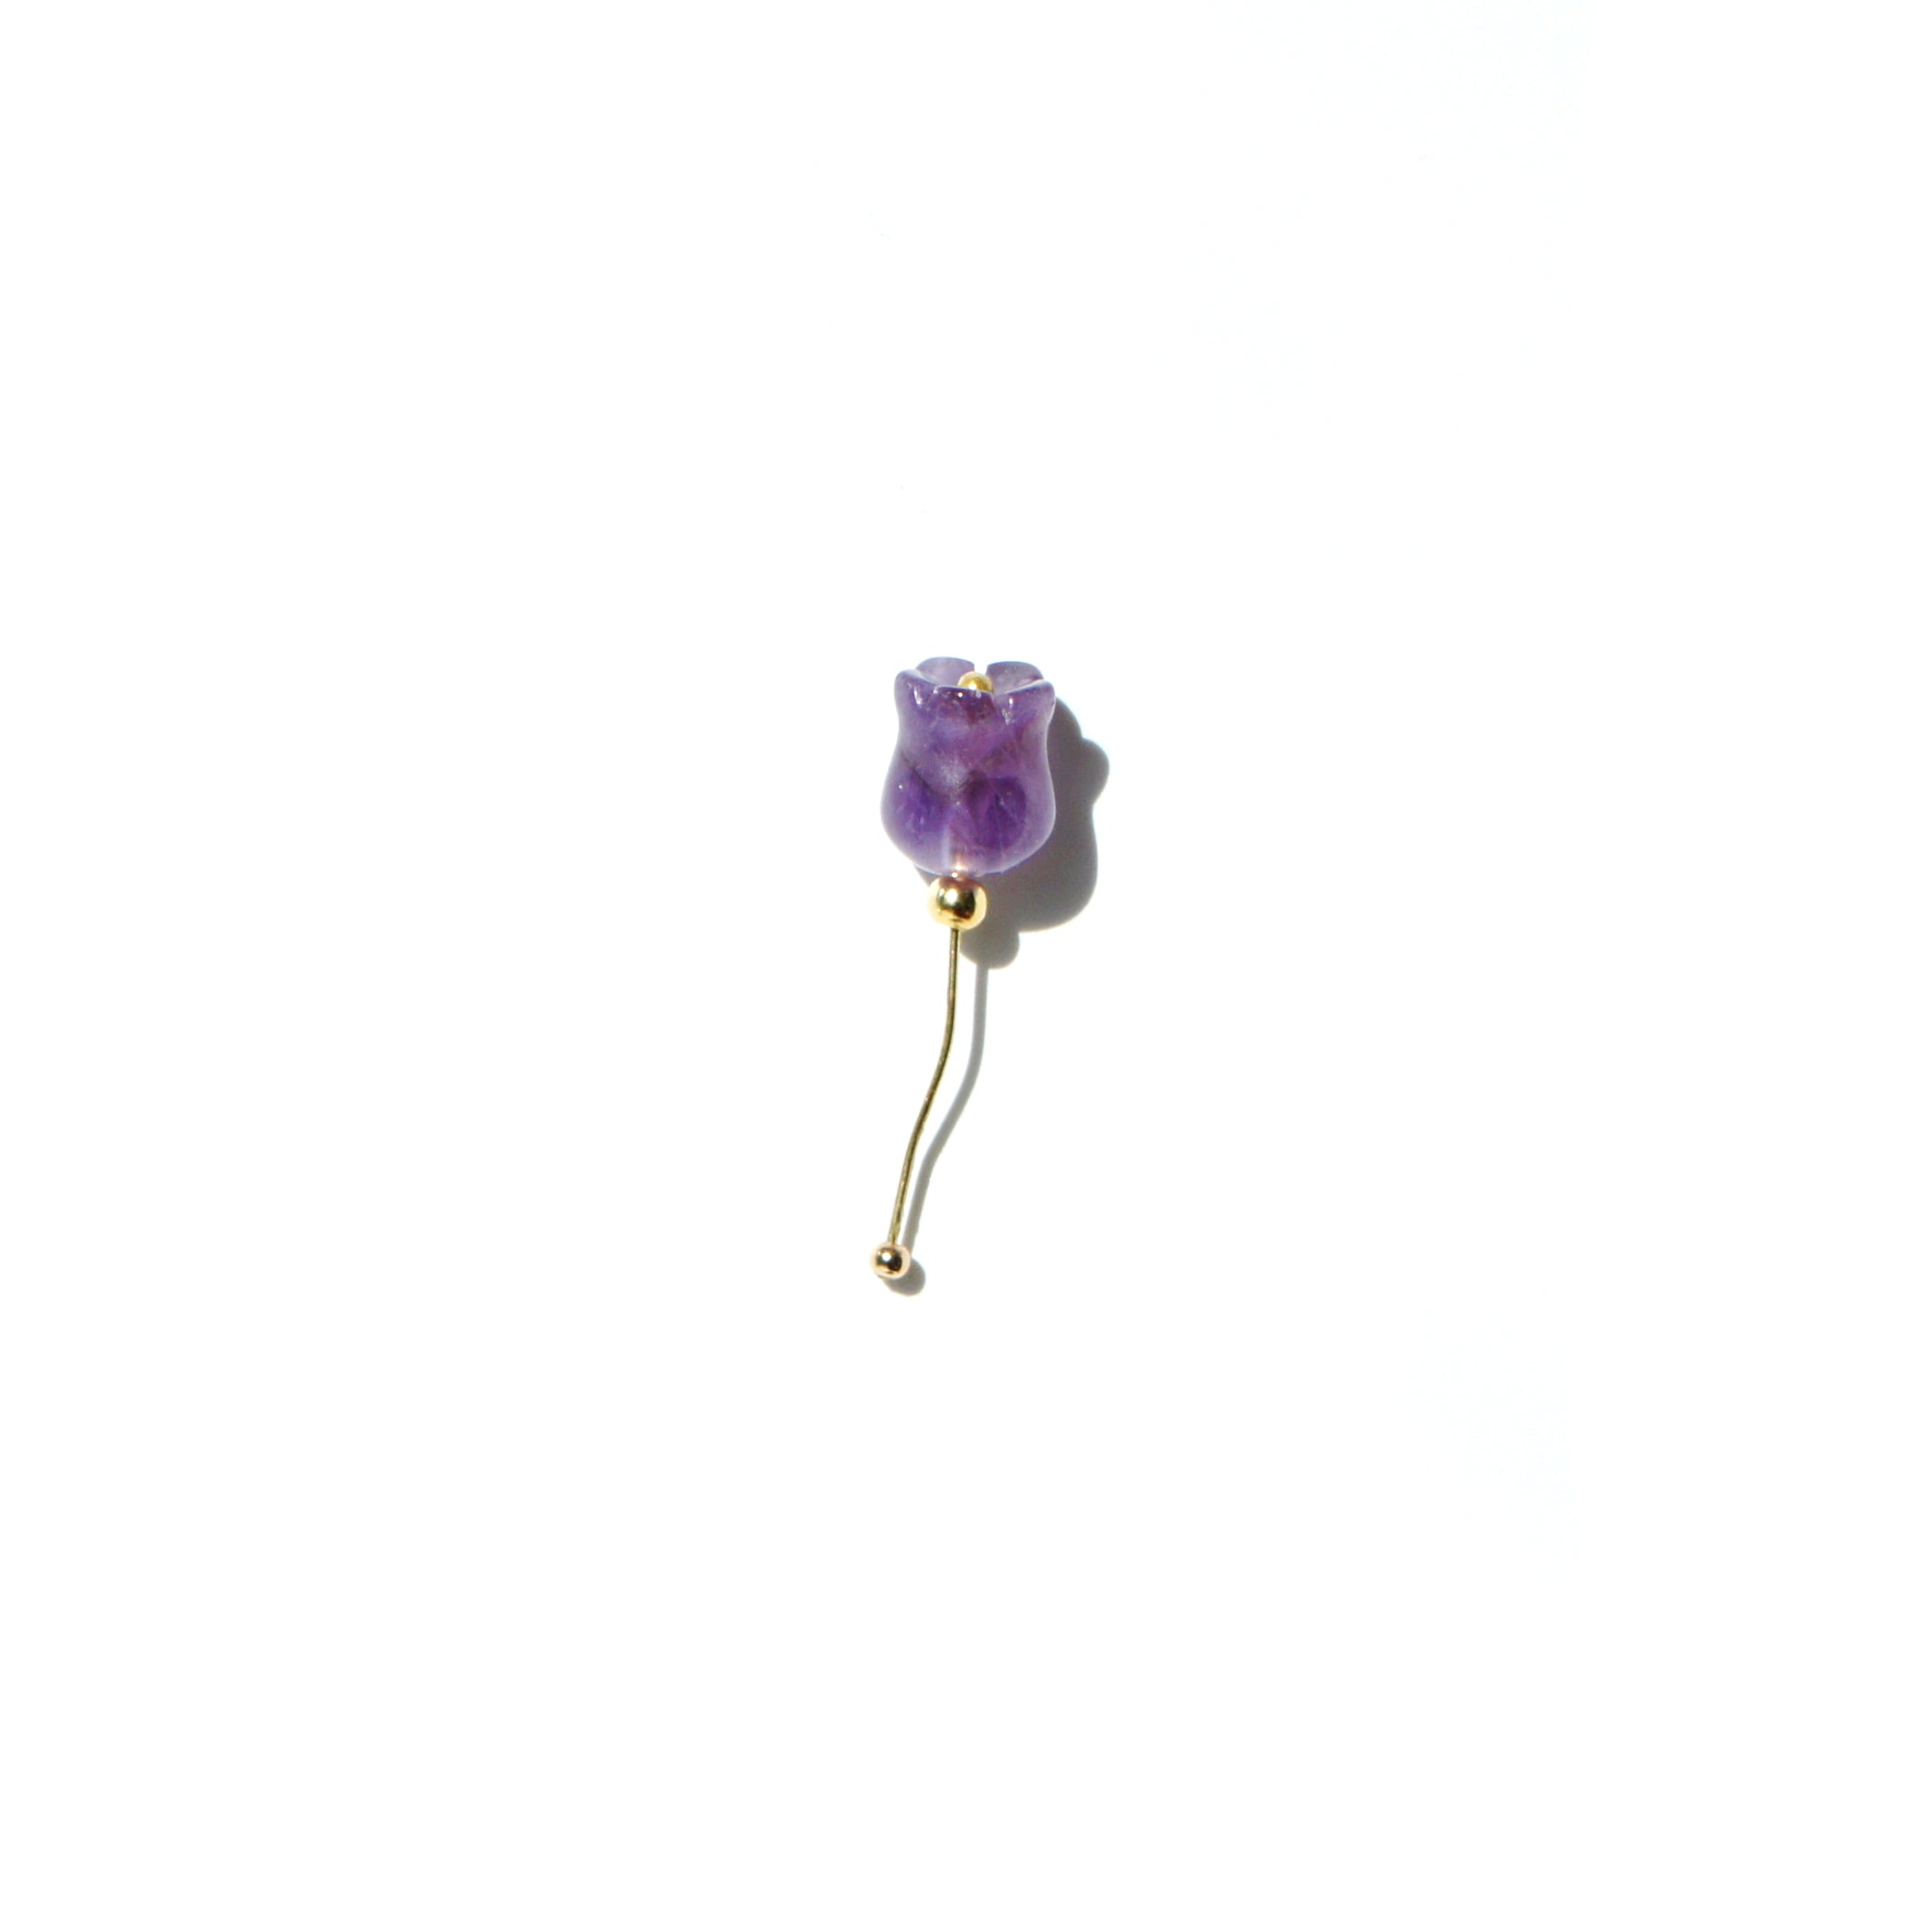 Tulip with Stem Single Earring (two ways)